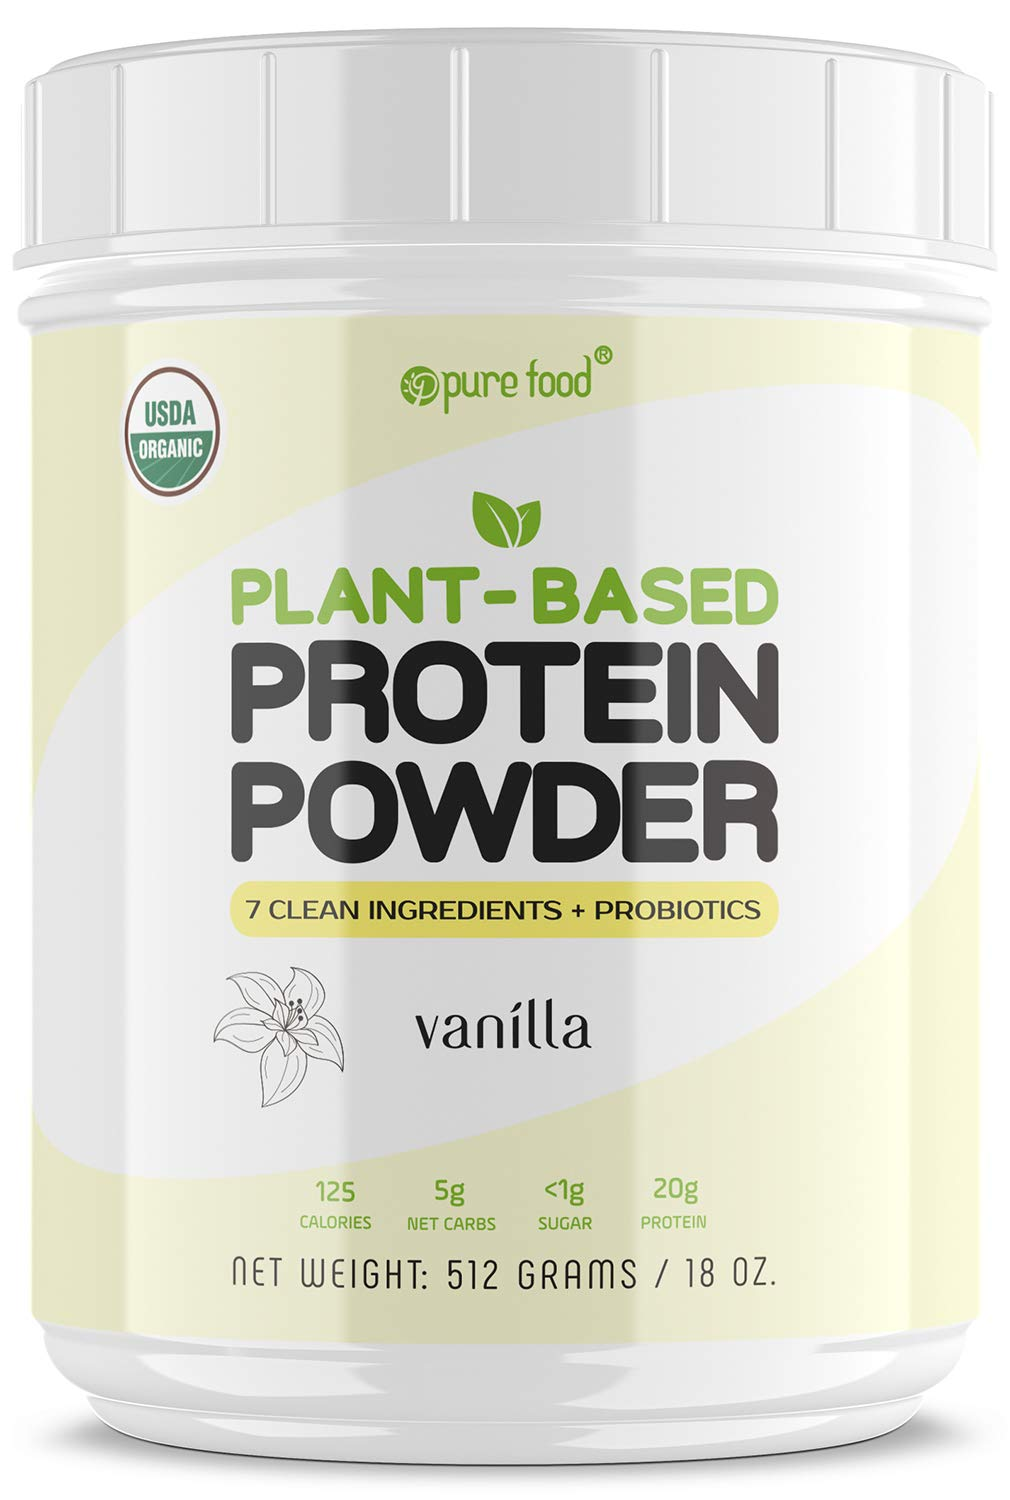 Pure Food: Plant Based Protein Powder with Probiotics | Organic, All Natural, Vegan Whole Food Ingredients with No Additives | Gluten, Dairy, Soy Free, Keto Friendly | Vanilla Bean, 512 Gram Tub by Pure Food